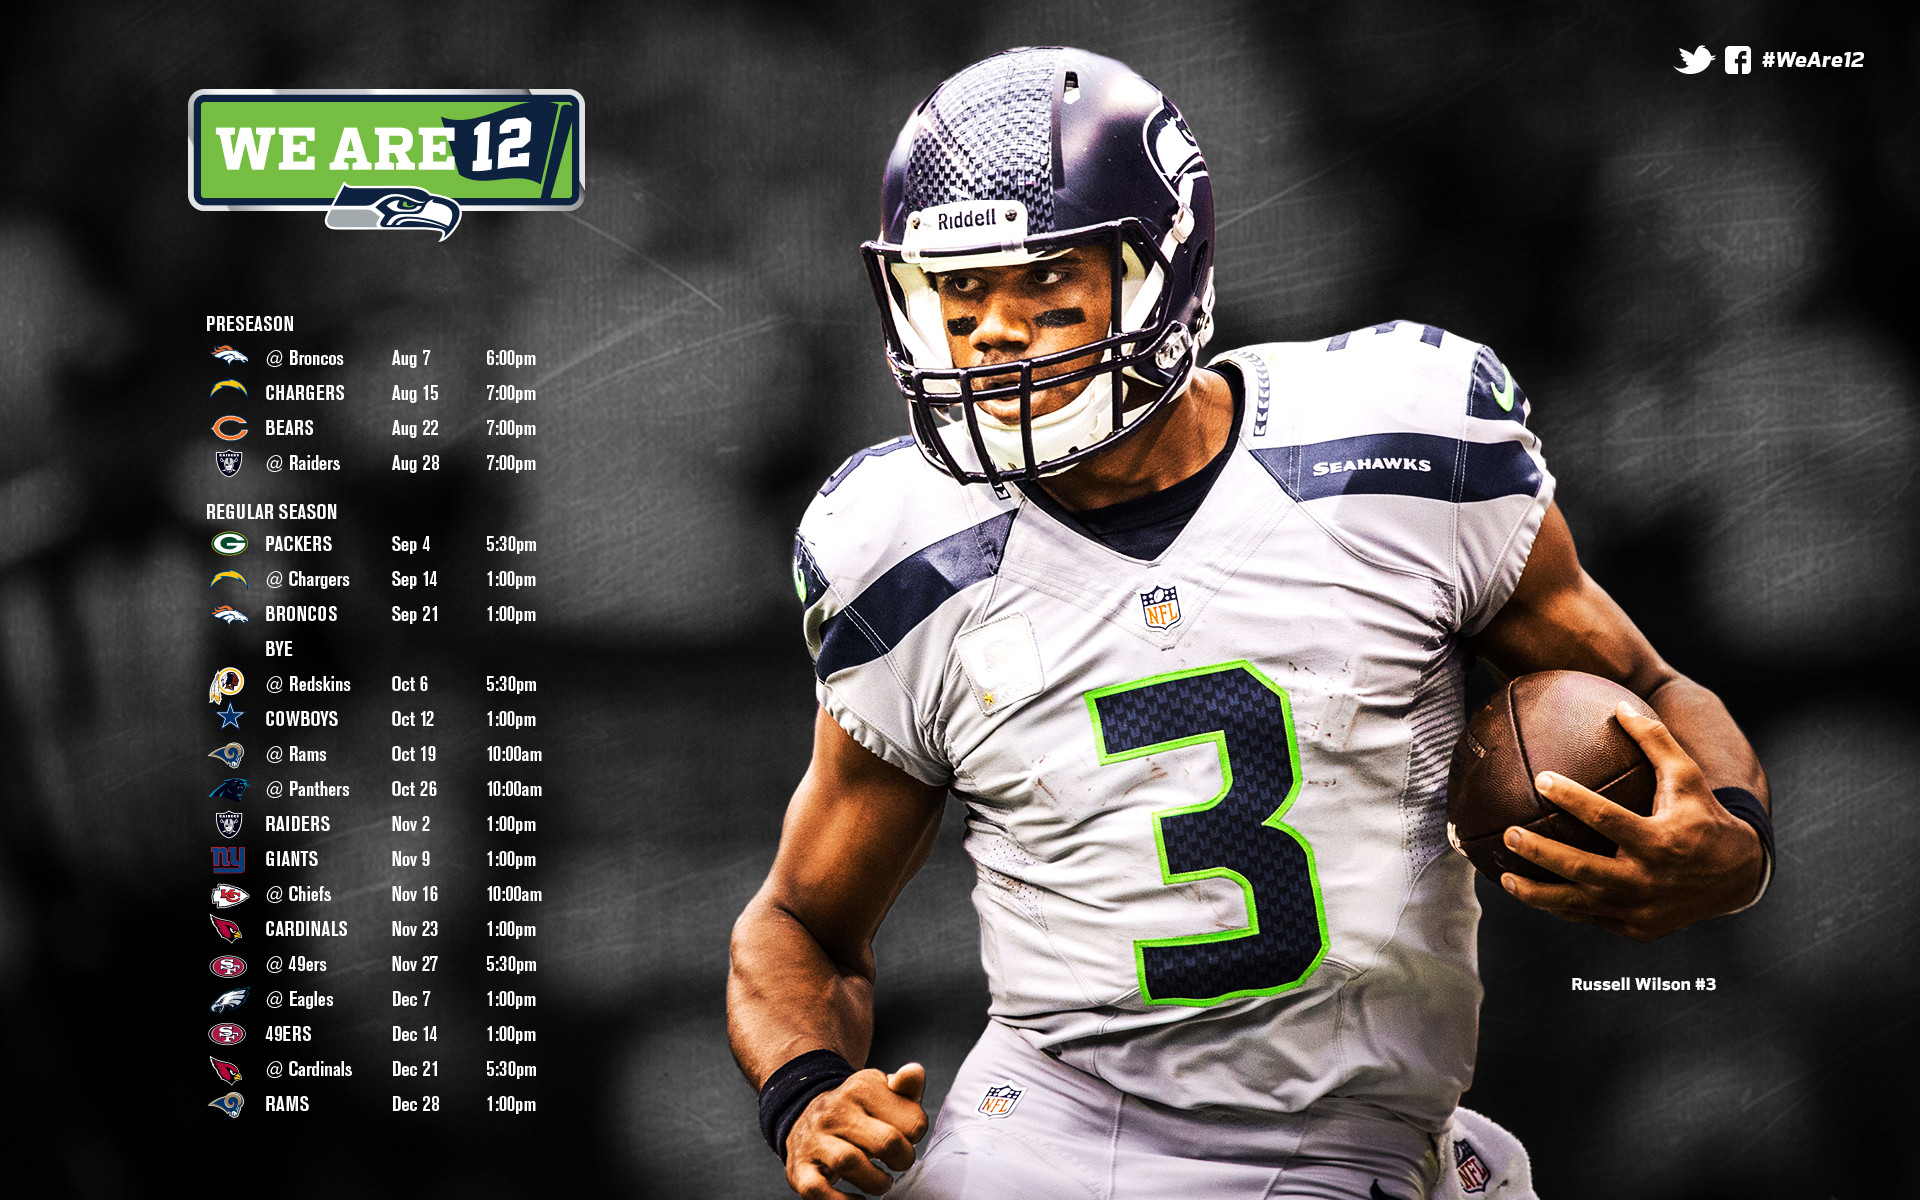 Russell wilson wallpapers 63 images - Seahawks wallpaper russell wilson ...